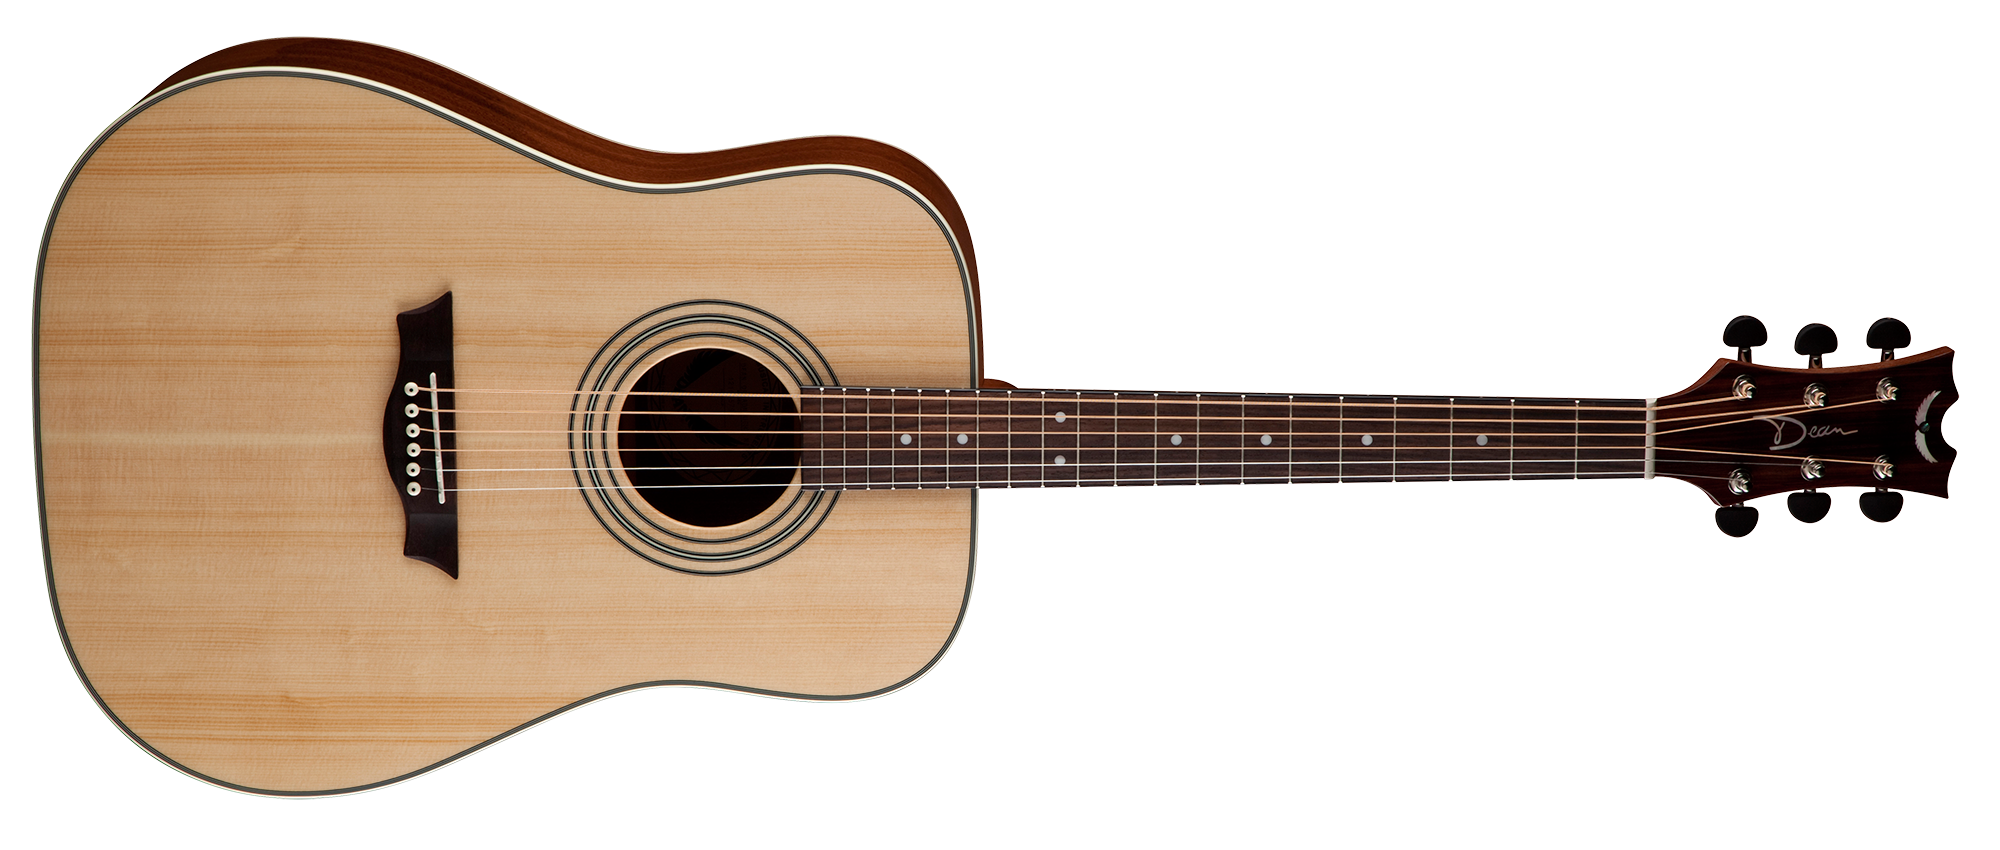 The music store inc. Clipart guitar acoustic